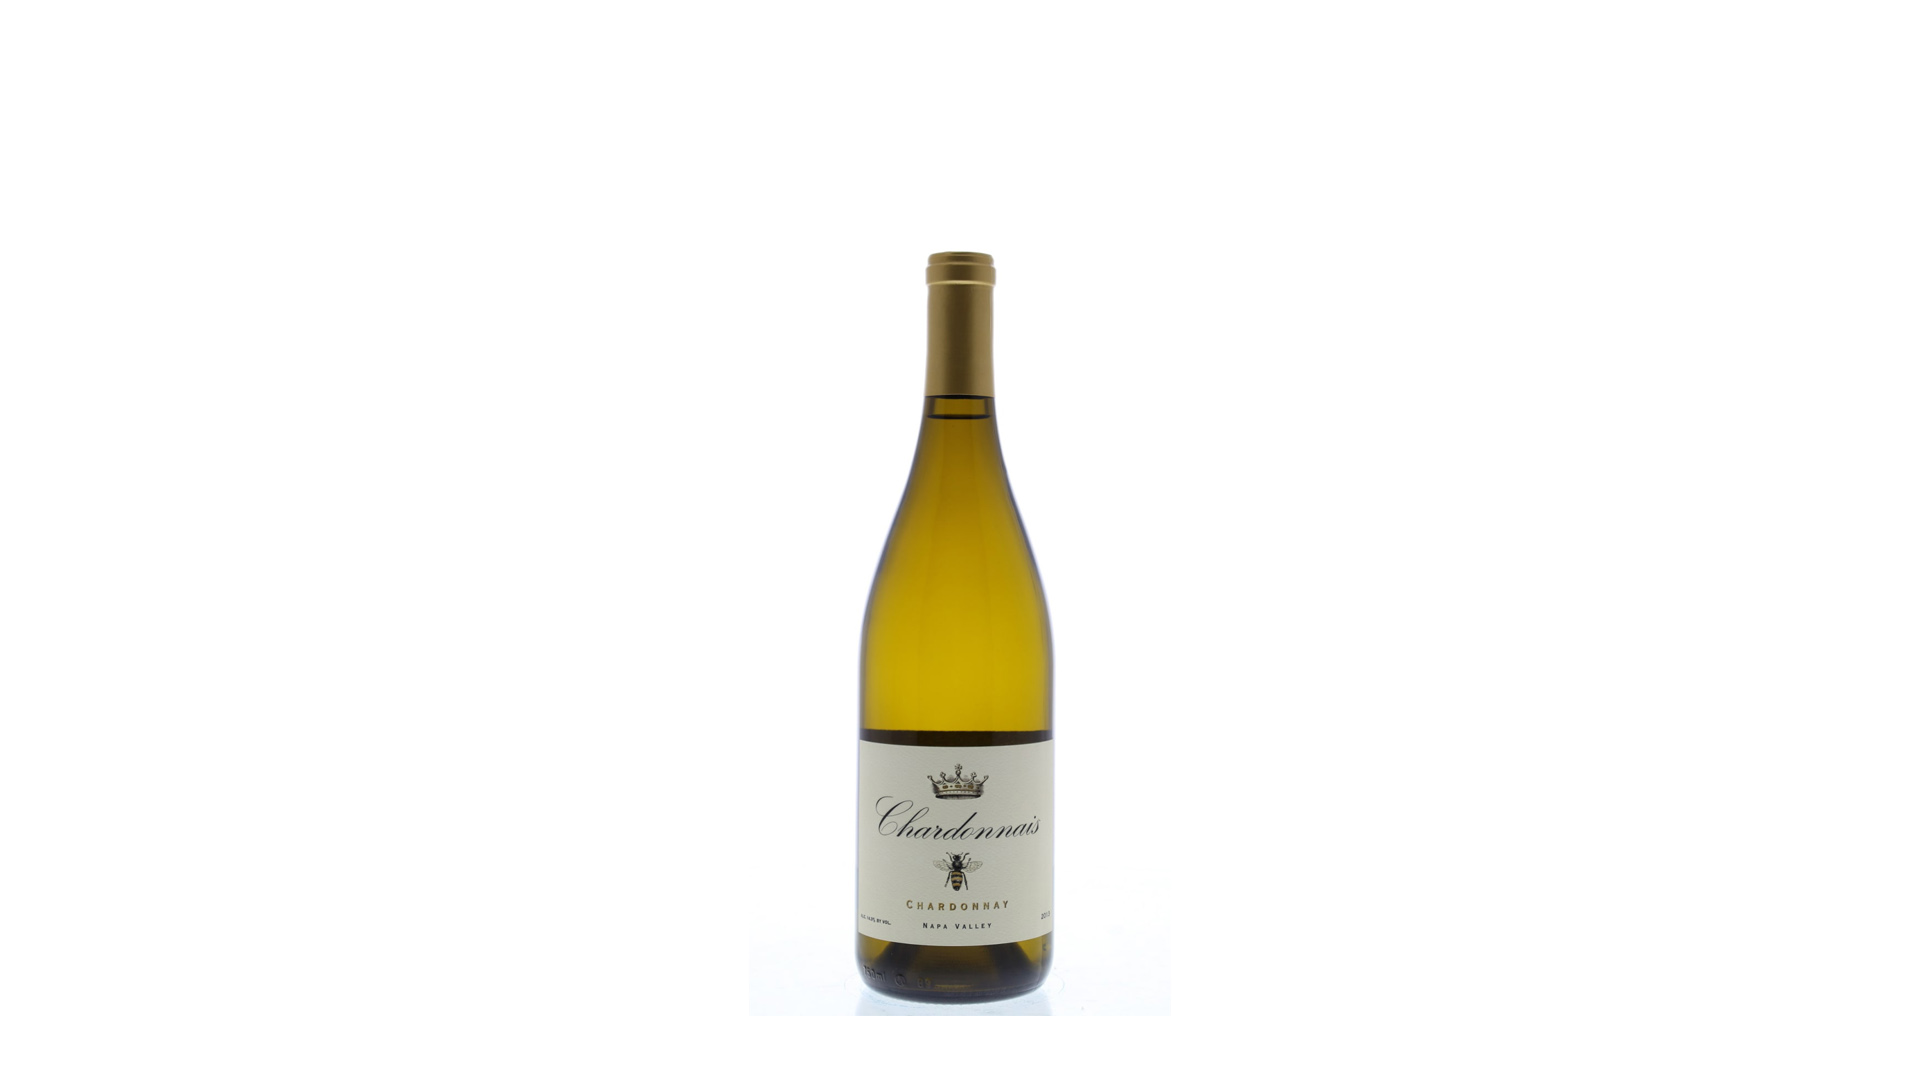 Chardonnais Napa Valley Chardonnay 2013 is one of 5 delightful wines special offers